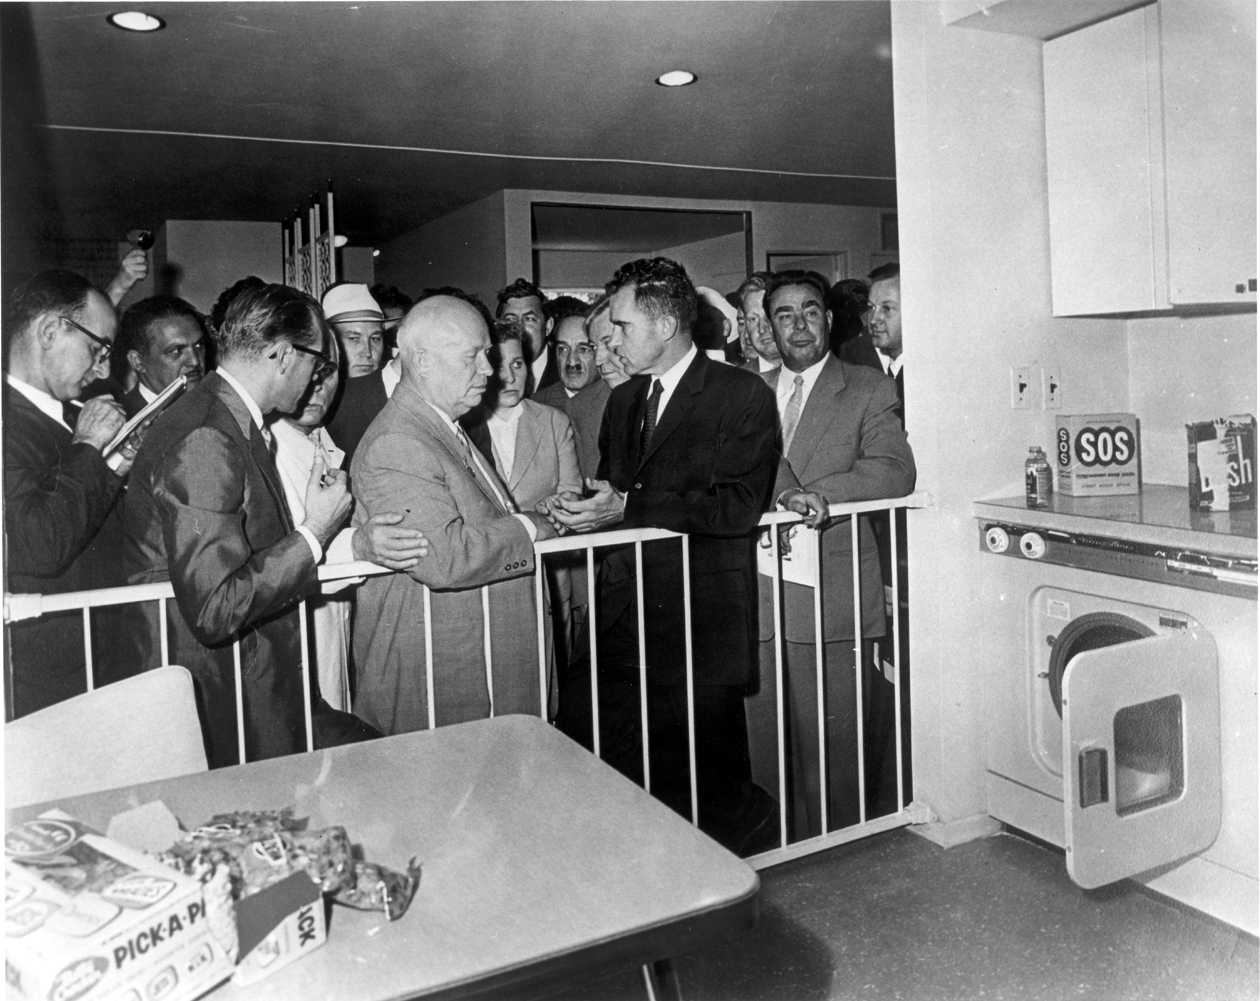 Vice-President Nixon spars with Premier Khrushchev before reporters and onlookers, including Politburo member Leonid Brezhnev at the American National Exhibition at Sokolniki Park, in Moscow, 1959. Nixon and Khrushchev are photographed in front of a kitchen display – the impromptu exchanges came to be known as the Kitchen Debate, July 24, 1959. Richard Nixon Presidential Library and Museum, used with permission of the Richard Nixon Foundation and Julie Nixon Eisenhower.